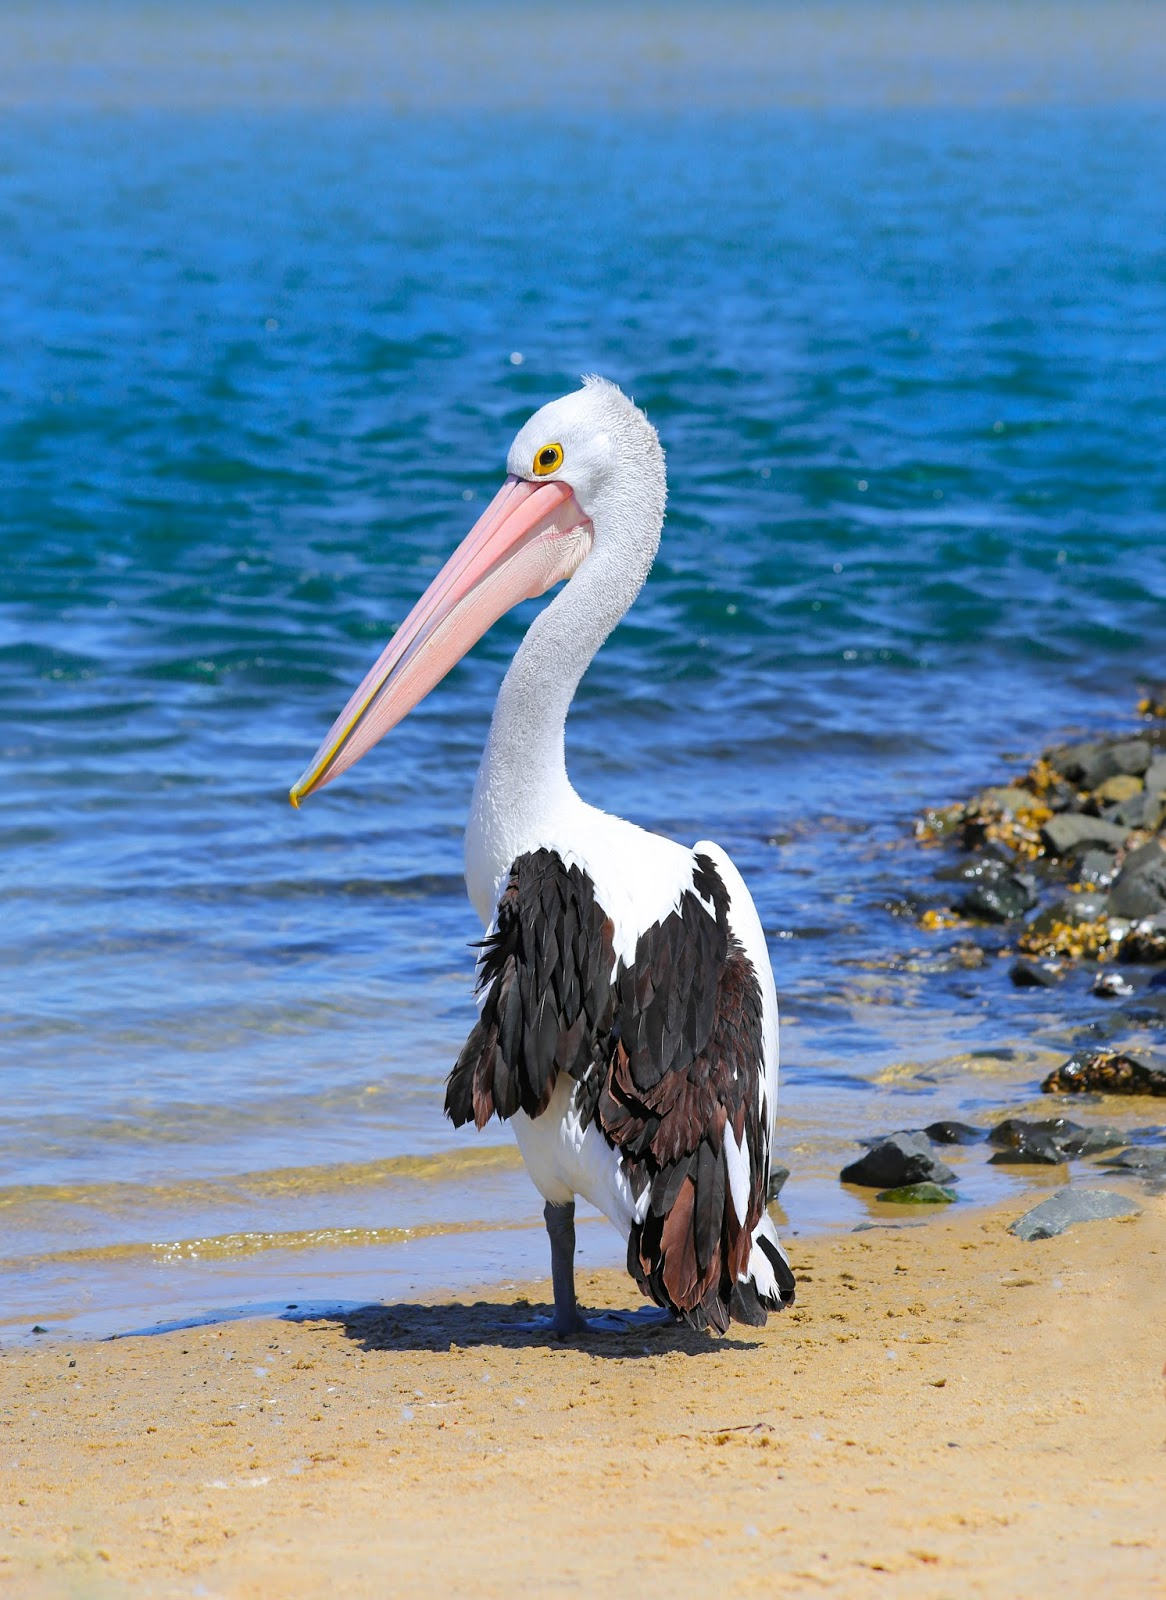 Picture of a pelican bird.